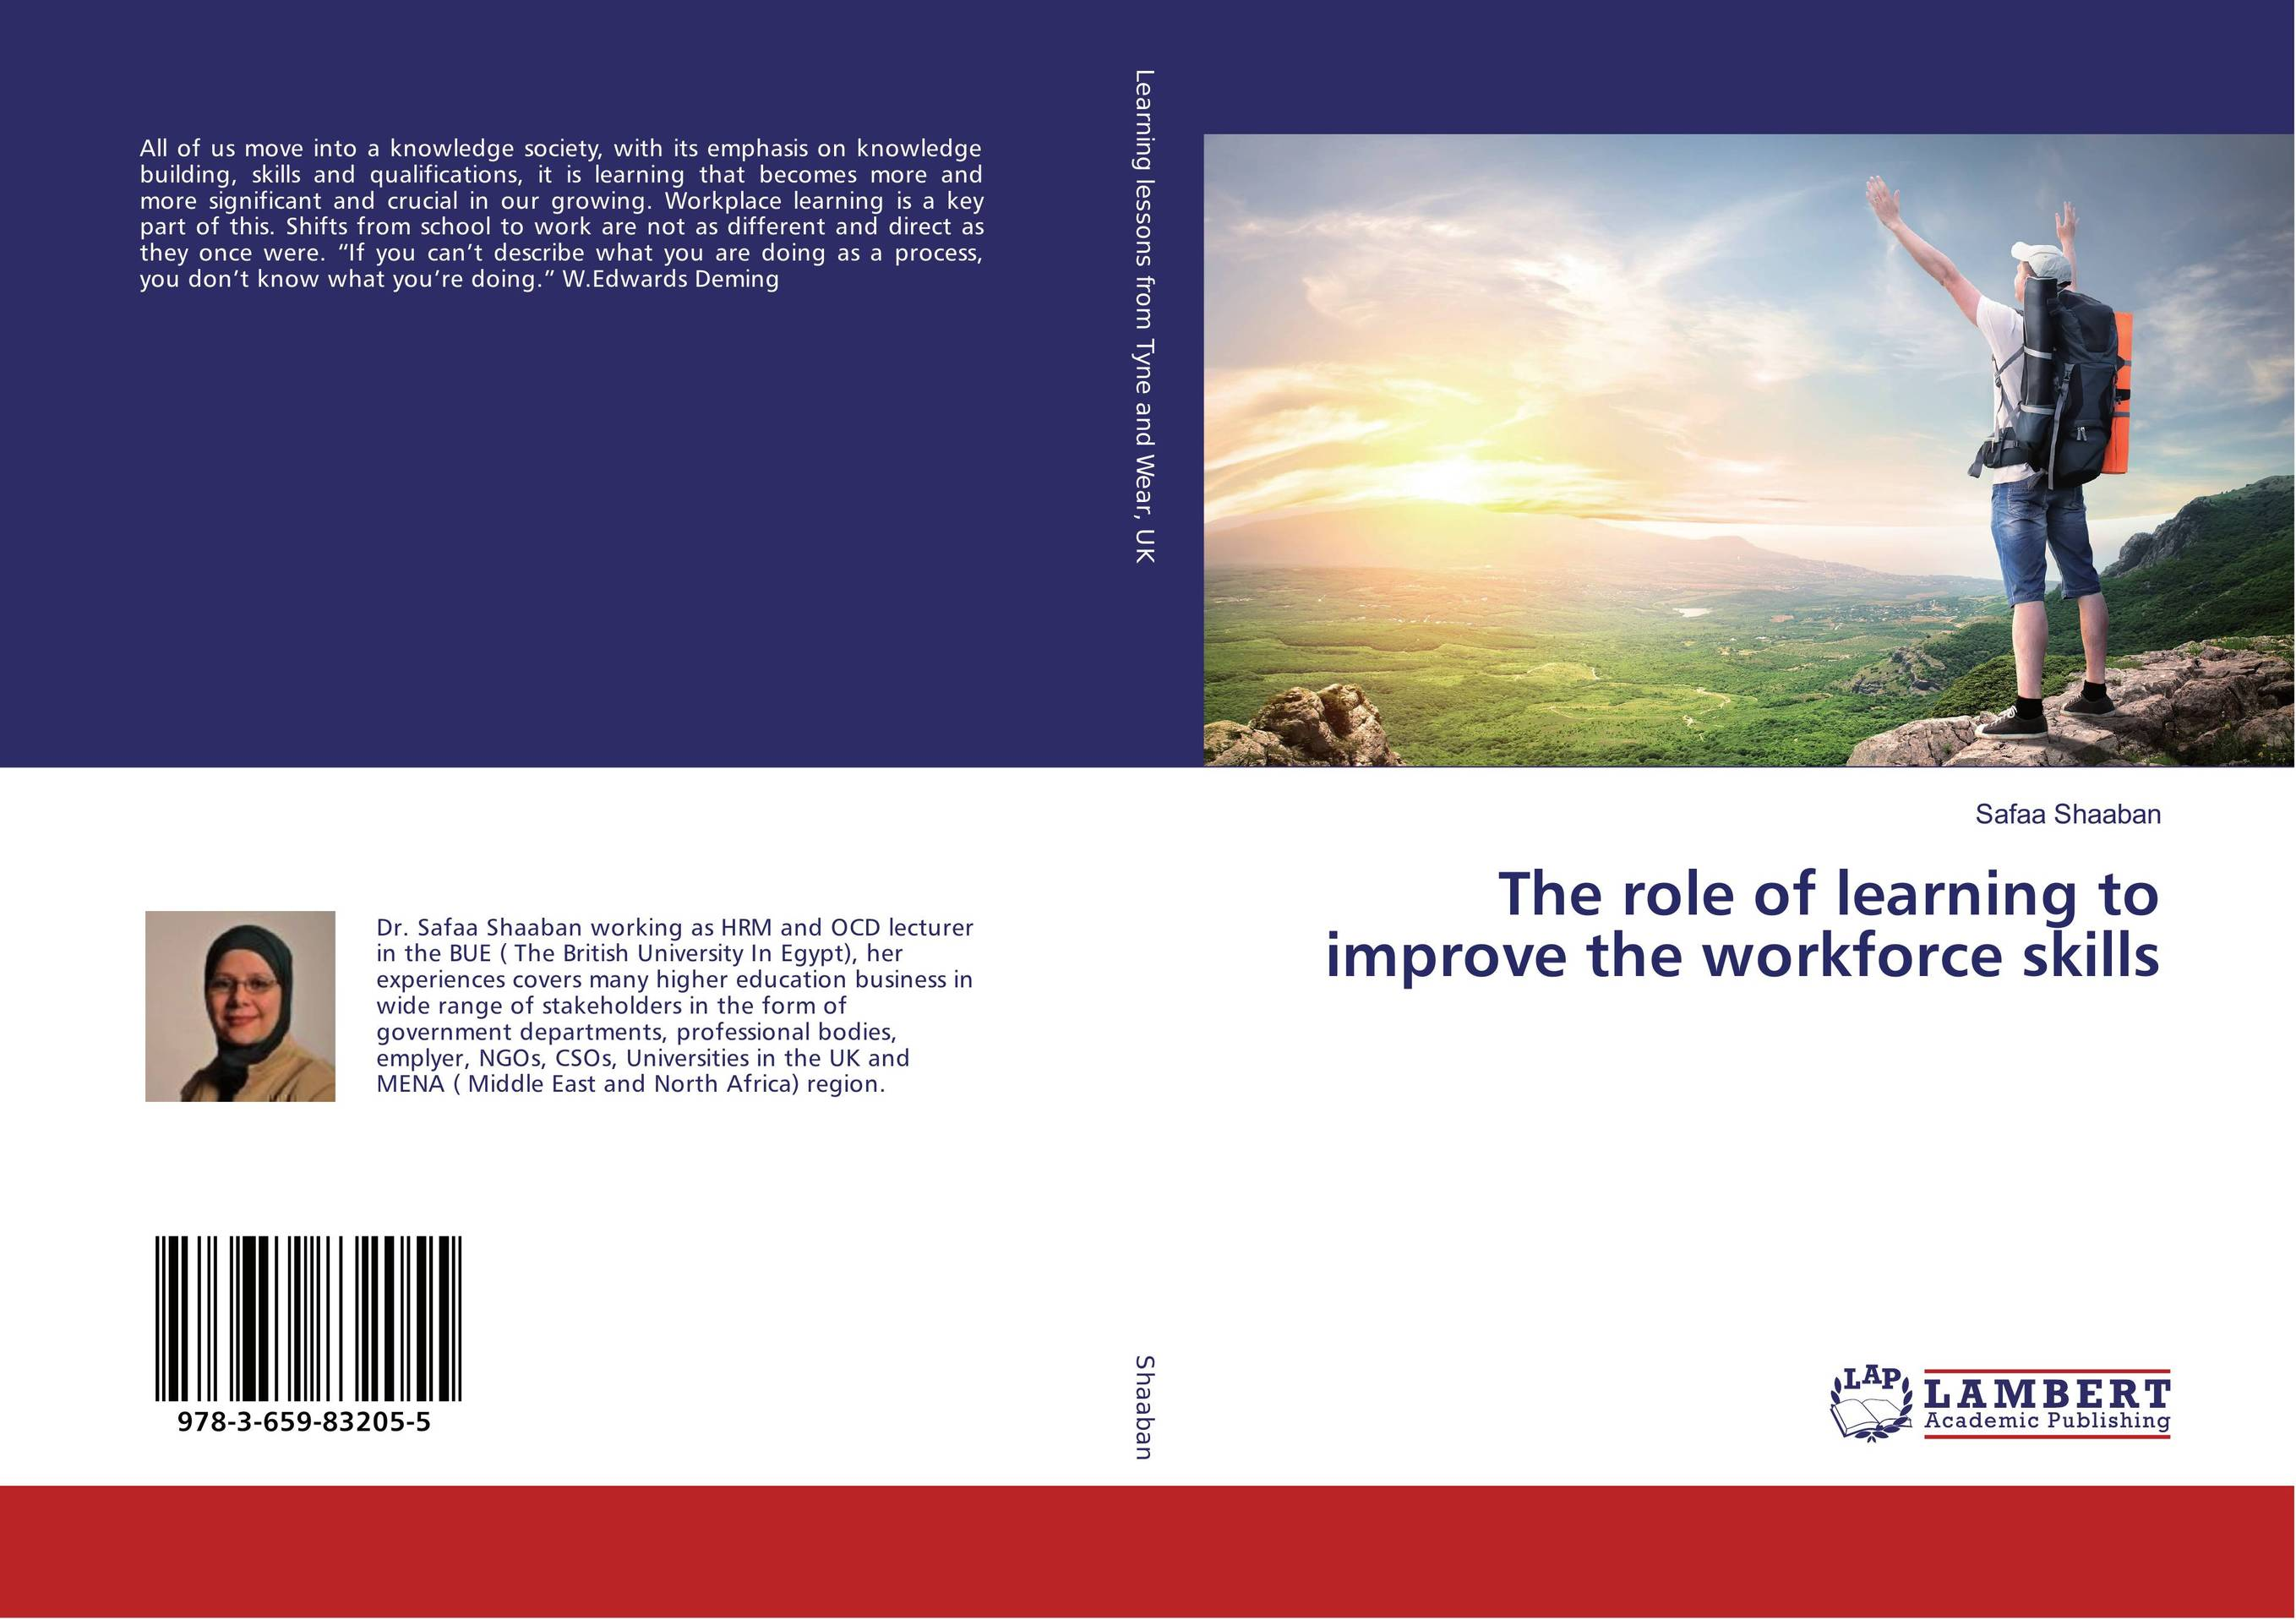 The role of learning to improve the workforce skills seeing things as they are